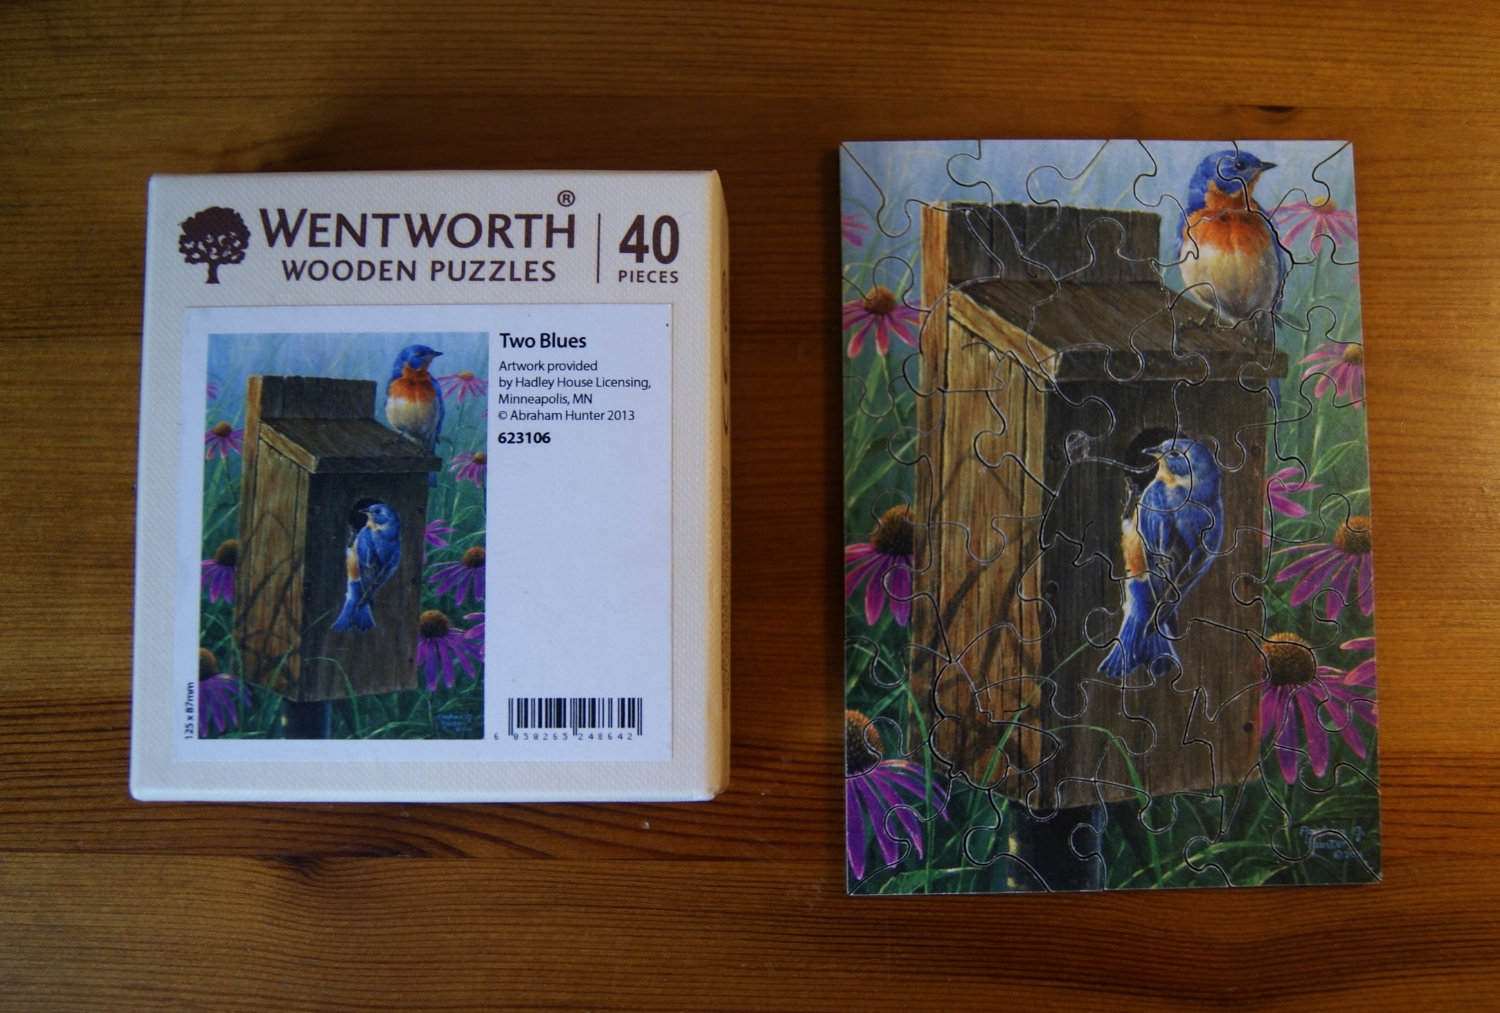 Wentworth jigsaw: Two Blues